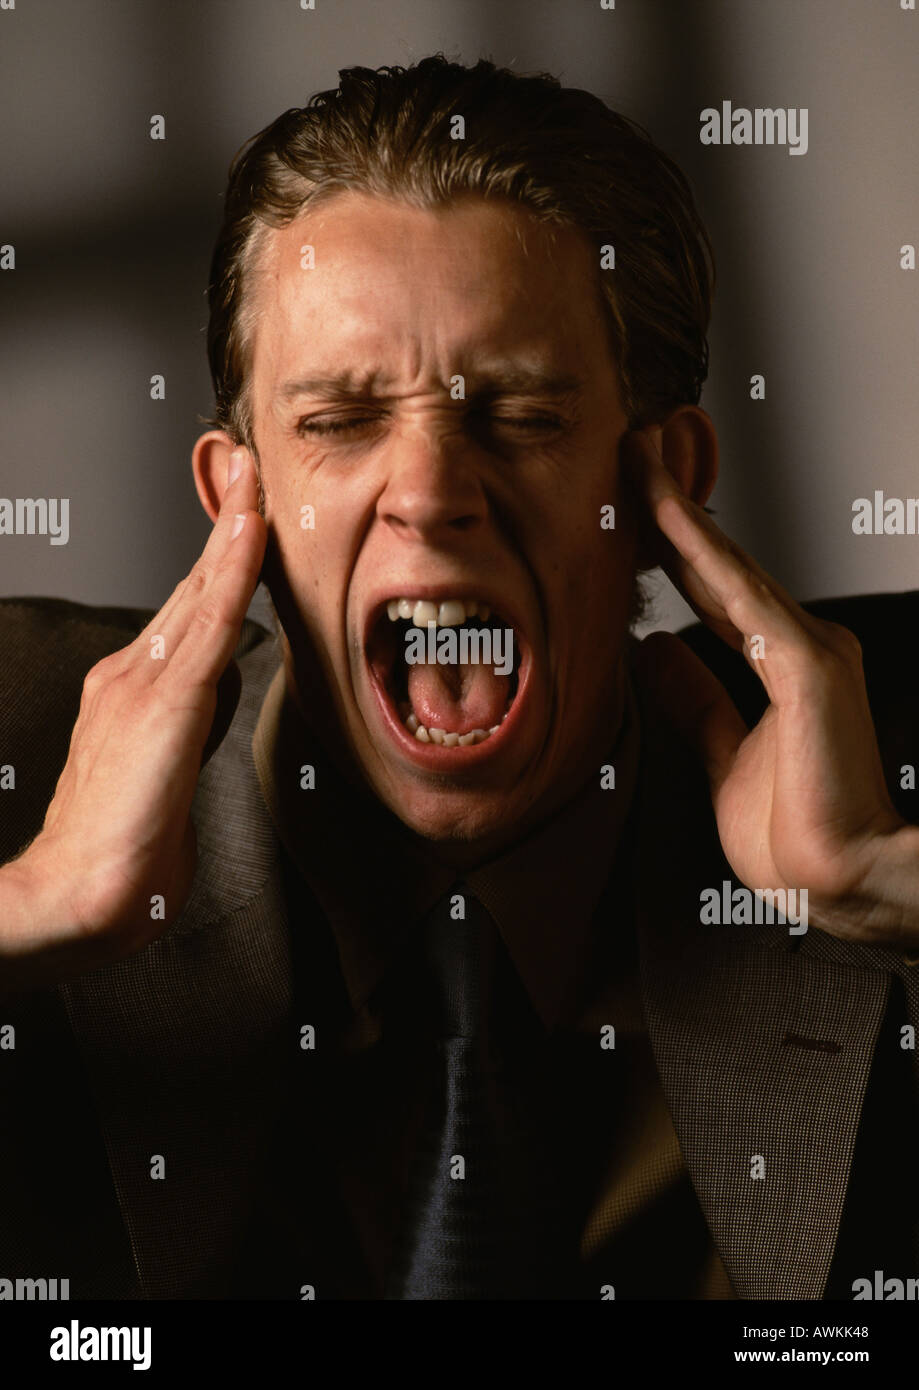 Man covering ears and screaming - Stock Image